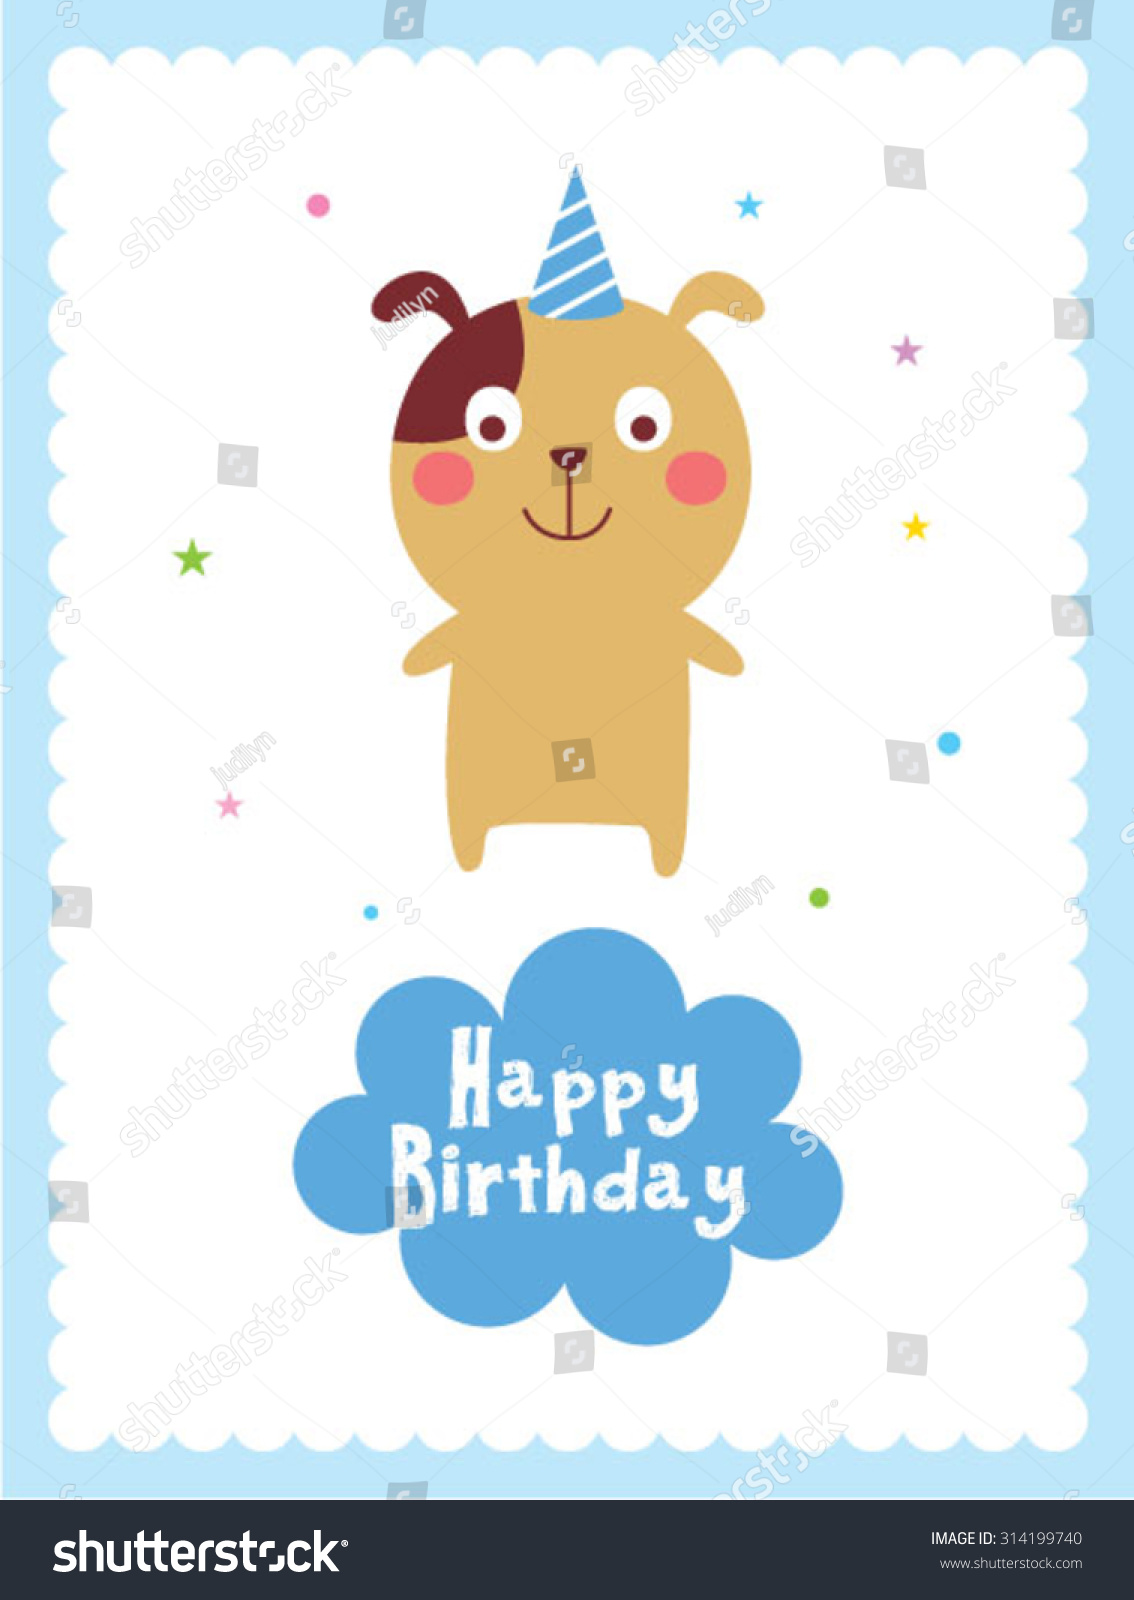 Cute puppy dog happy birthday card stock vector 314199740 shutterstock cute puppy dog happy birthday card bookmarktalkfo Choice Image